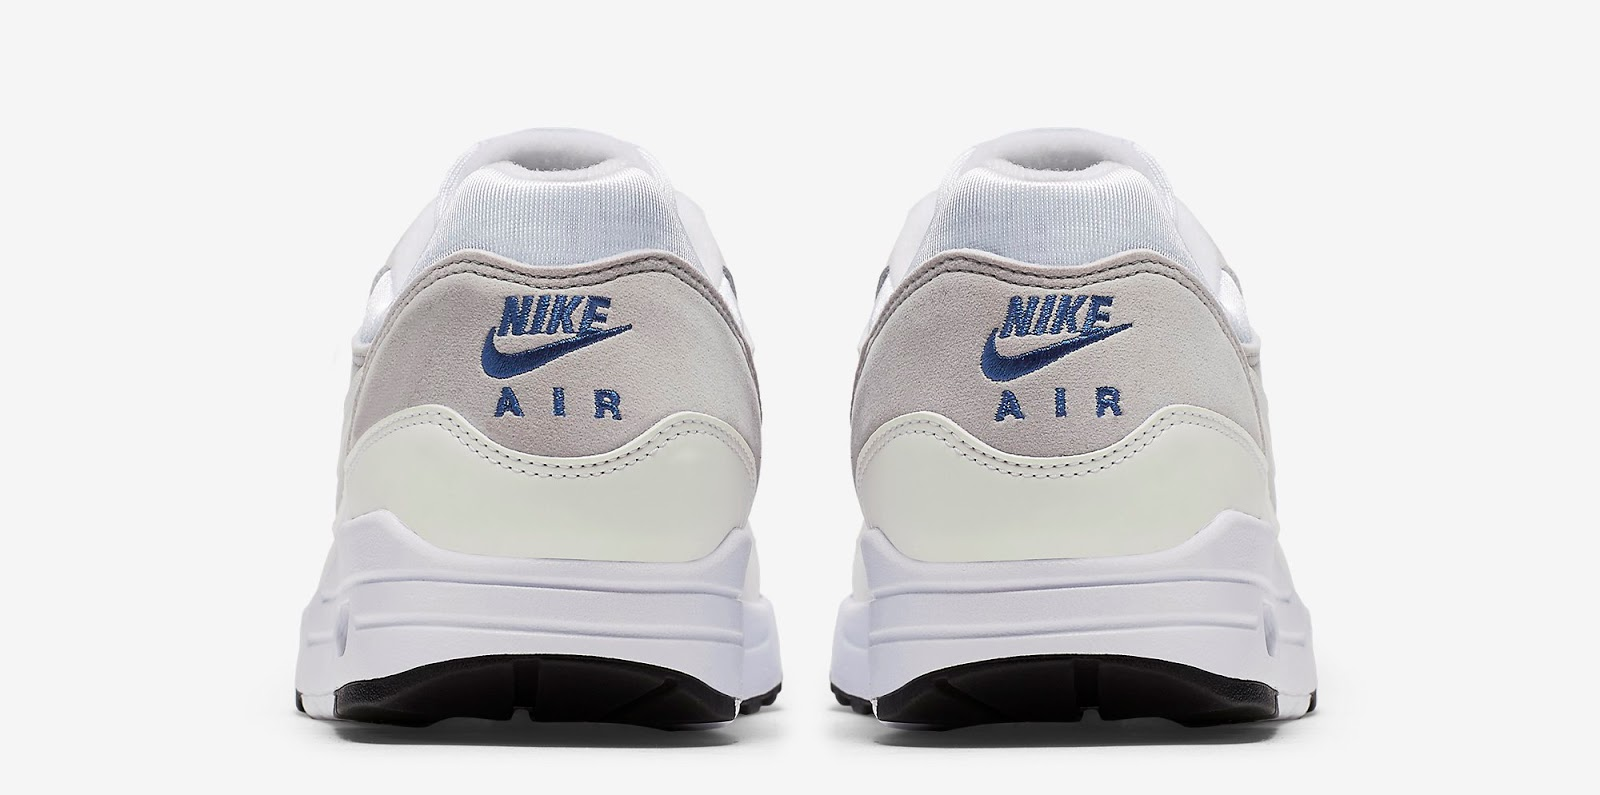 outlet store f5882 c1160 5e858 22d91  promo code for ajordanxi your 1 source for sneaker release  dates nike air max 1 cx